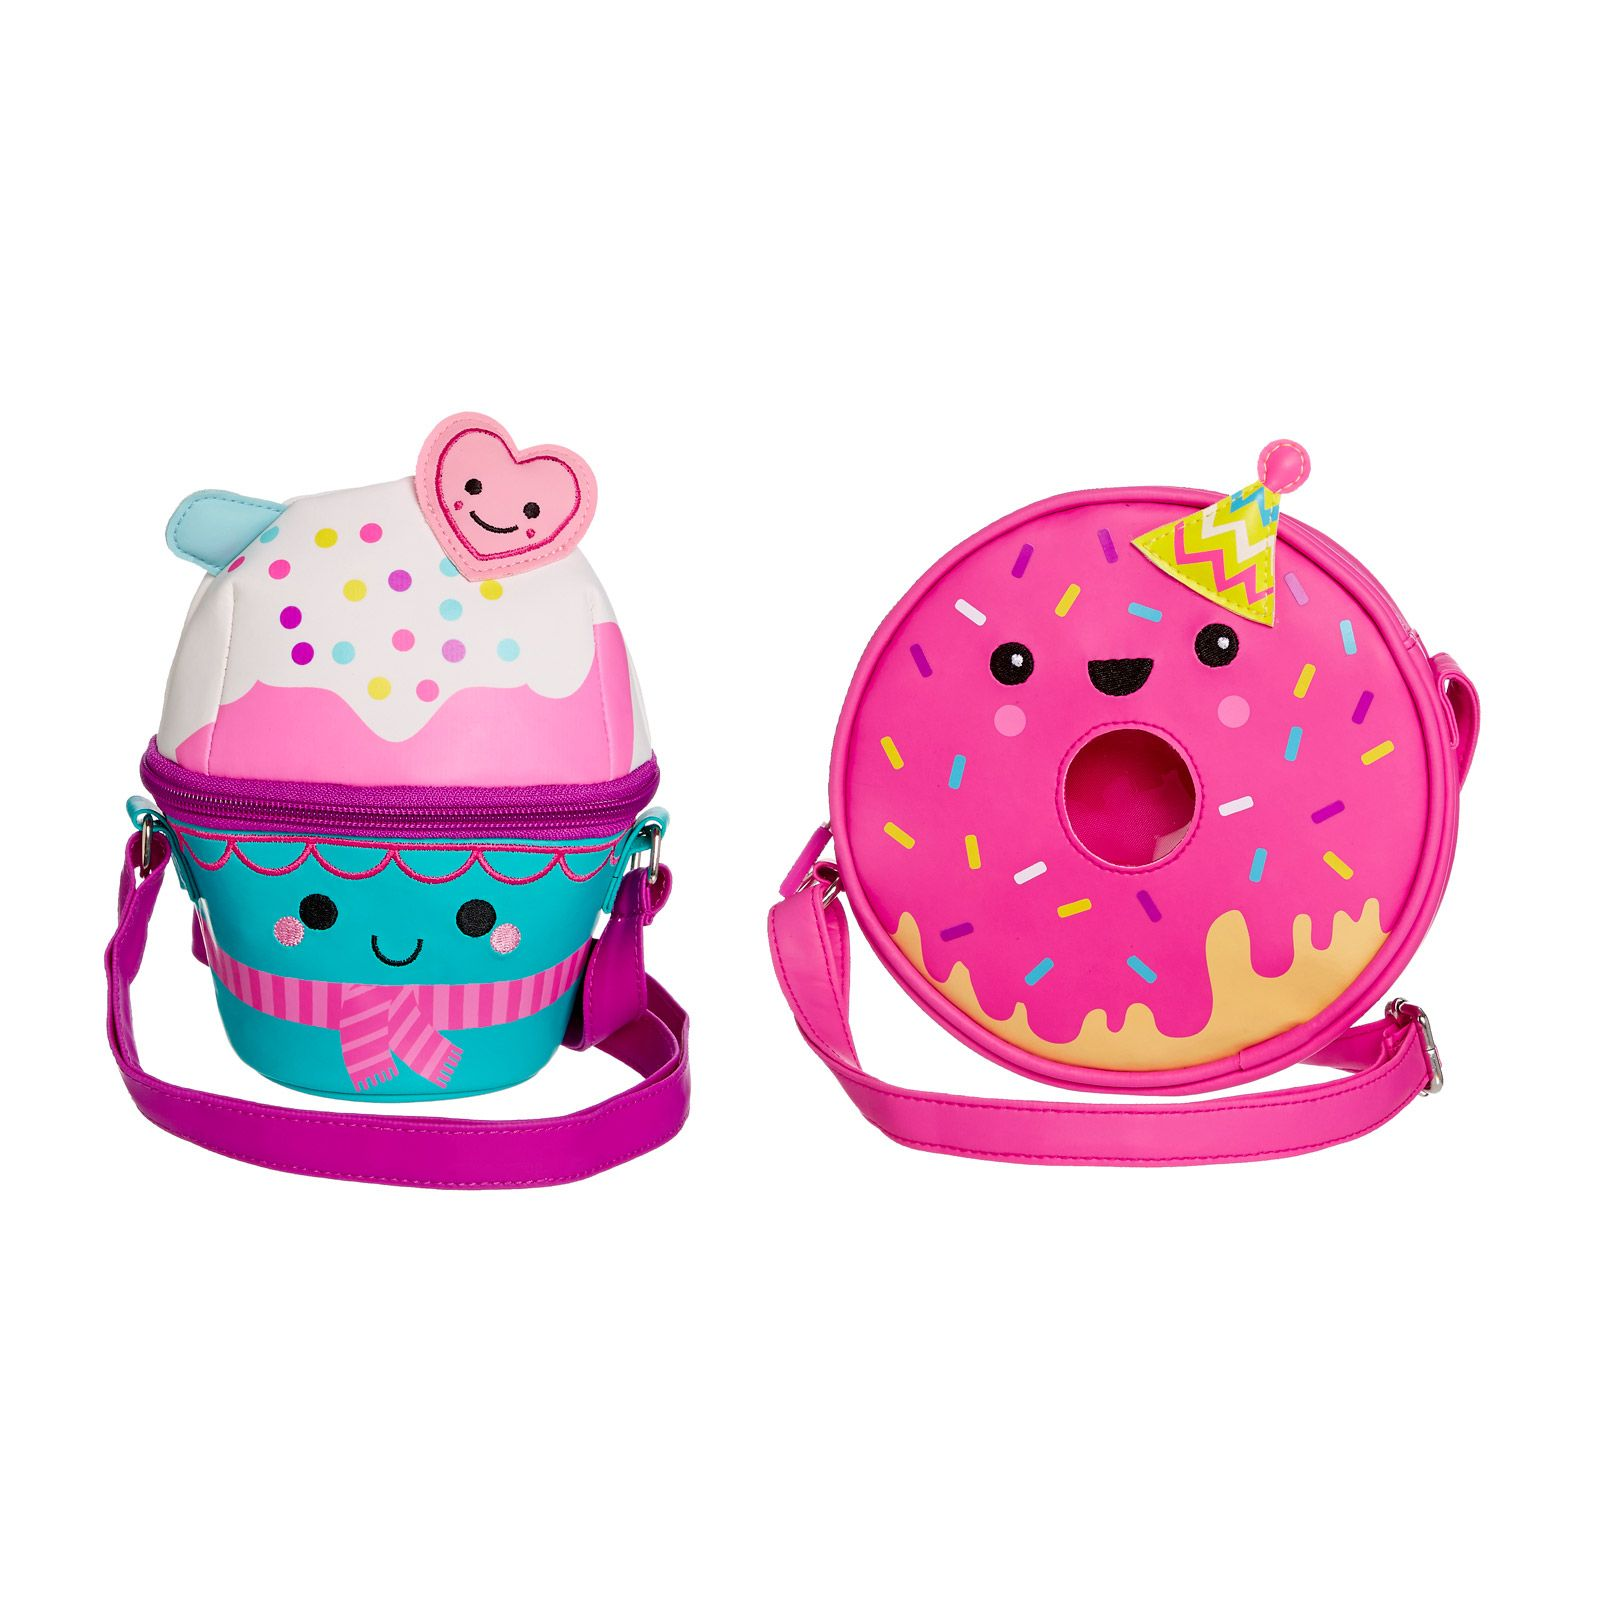 Smiggle bags for school - For Chloe Yums Shoulder Bag Smiggle From Chloe S Smiggle List Not